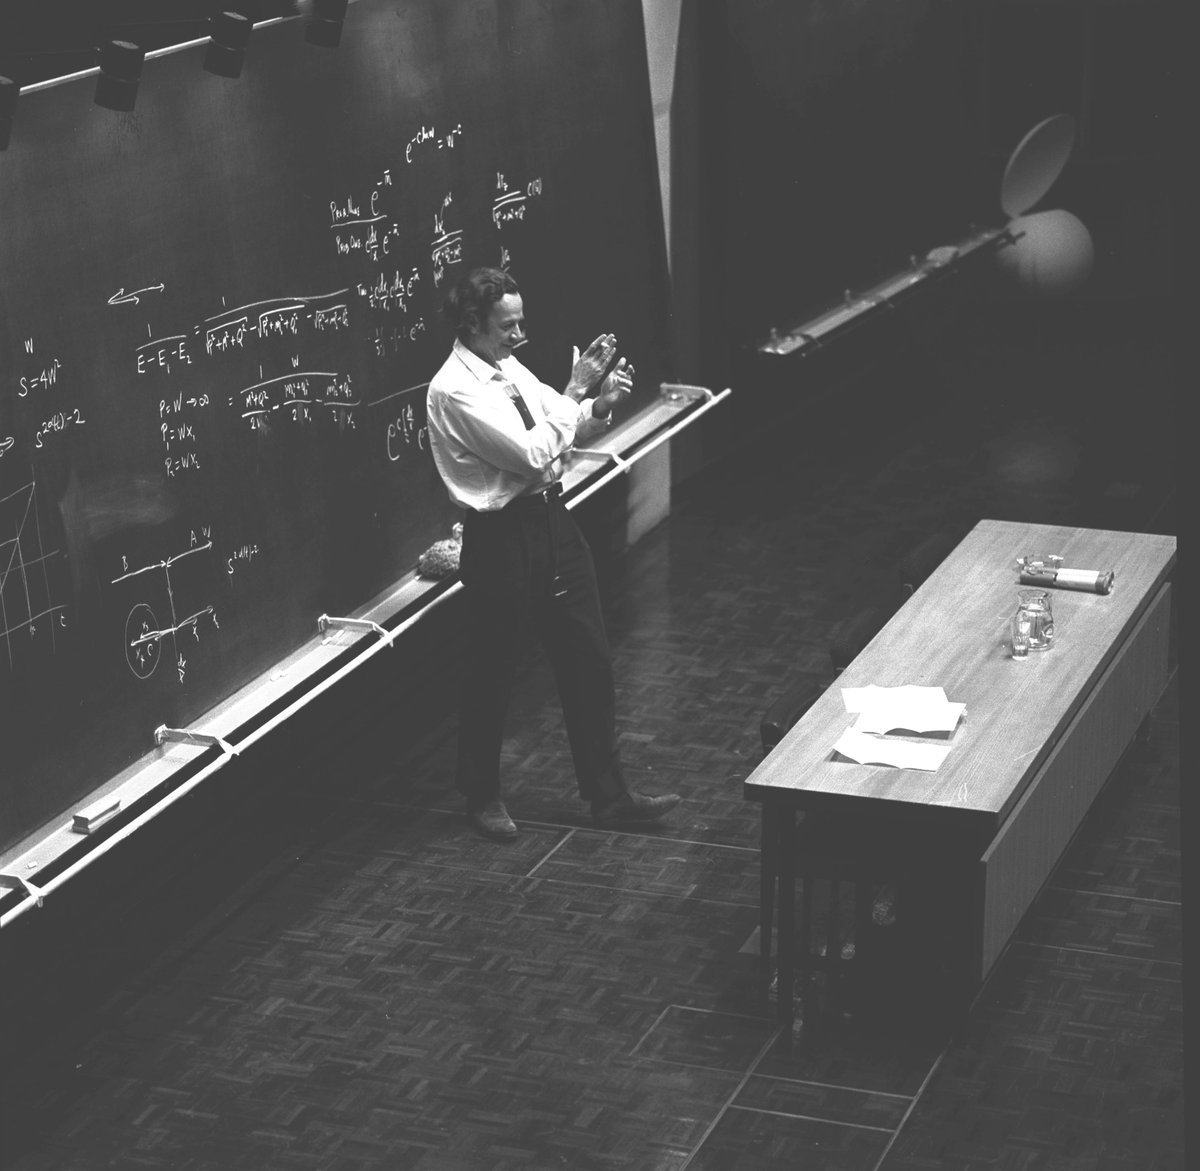 """FEYNMAN learning strategy in THREE points: 1. Continually ask """"Why?"""" 2. When you learn something, learn it to where you can explain it to a child. 3. Instead of arbitrarily memorizing things, look for the explanation that makes it obvious. https://t.co/2BxMOMNUyE"""